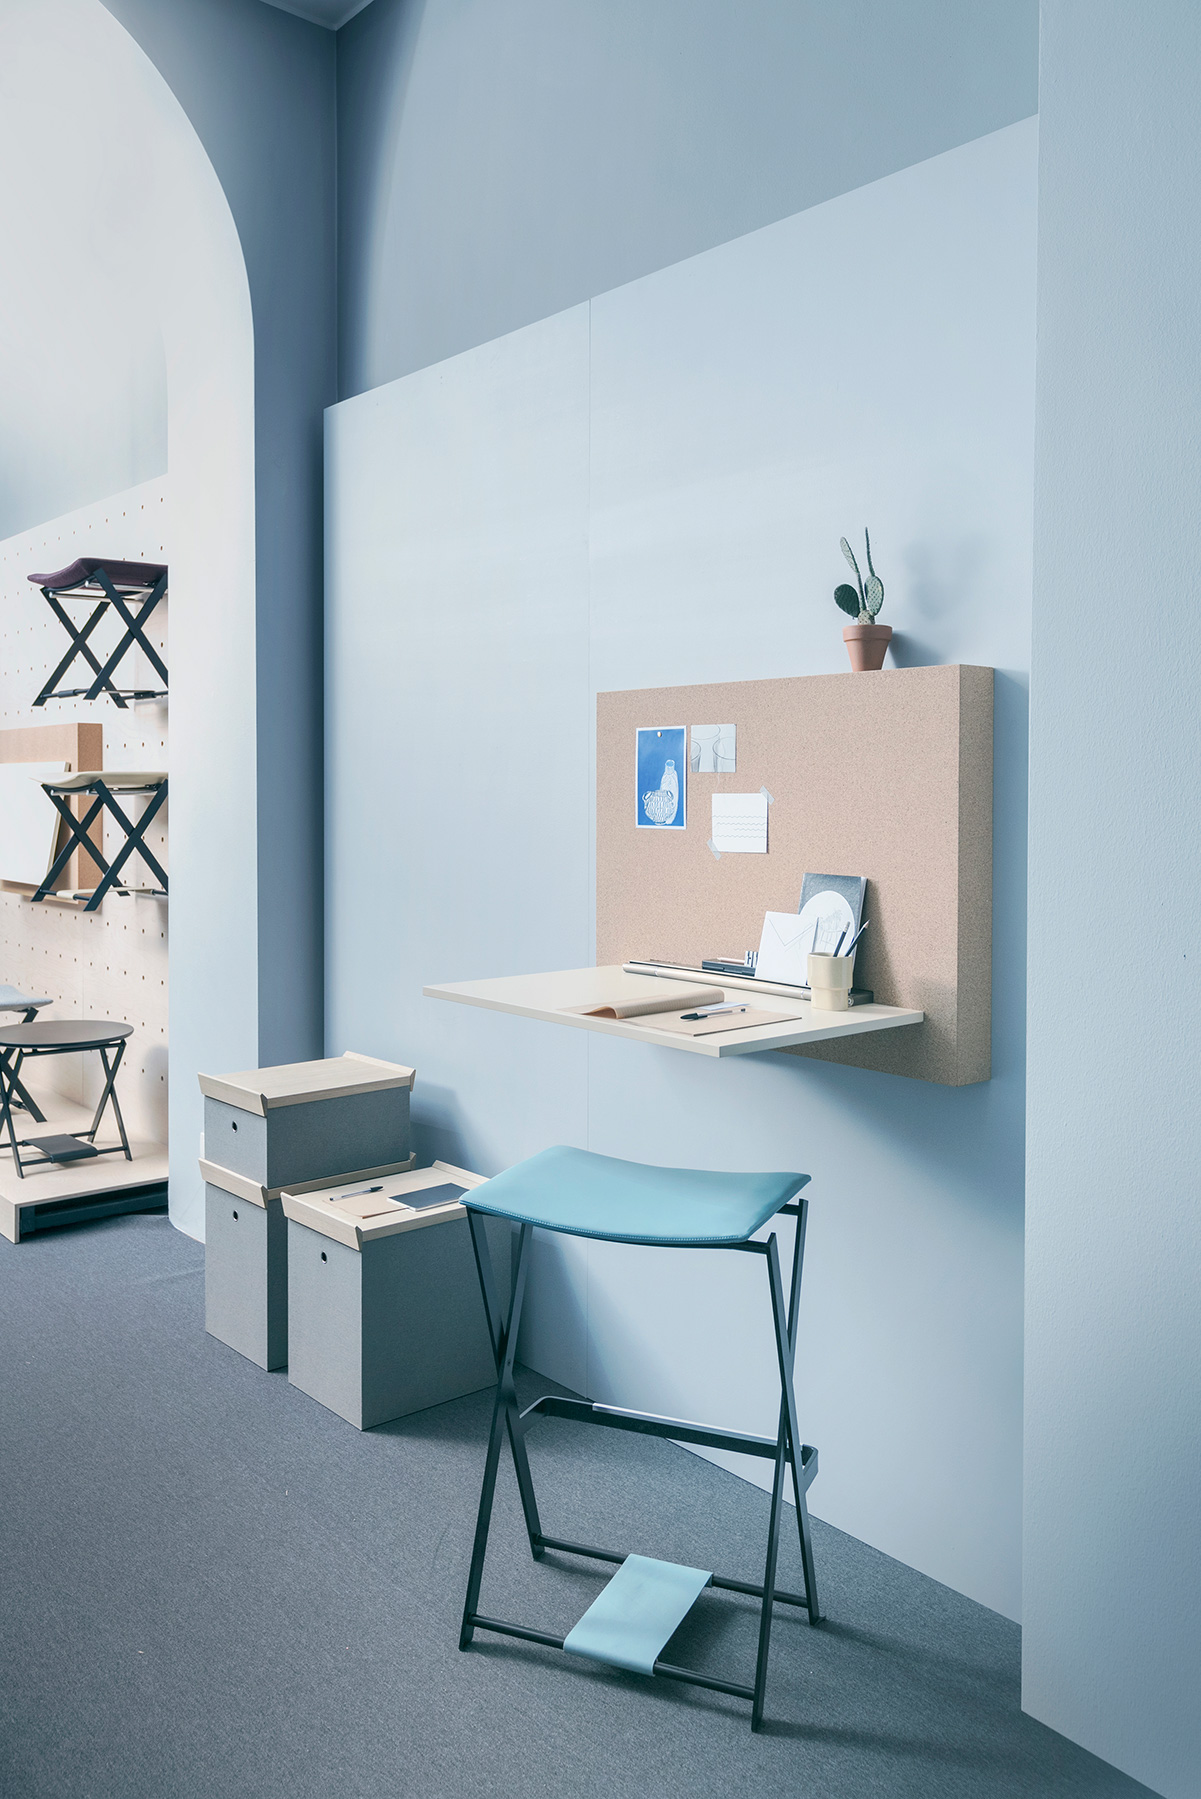 My Little Office and light blue Fogg stool